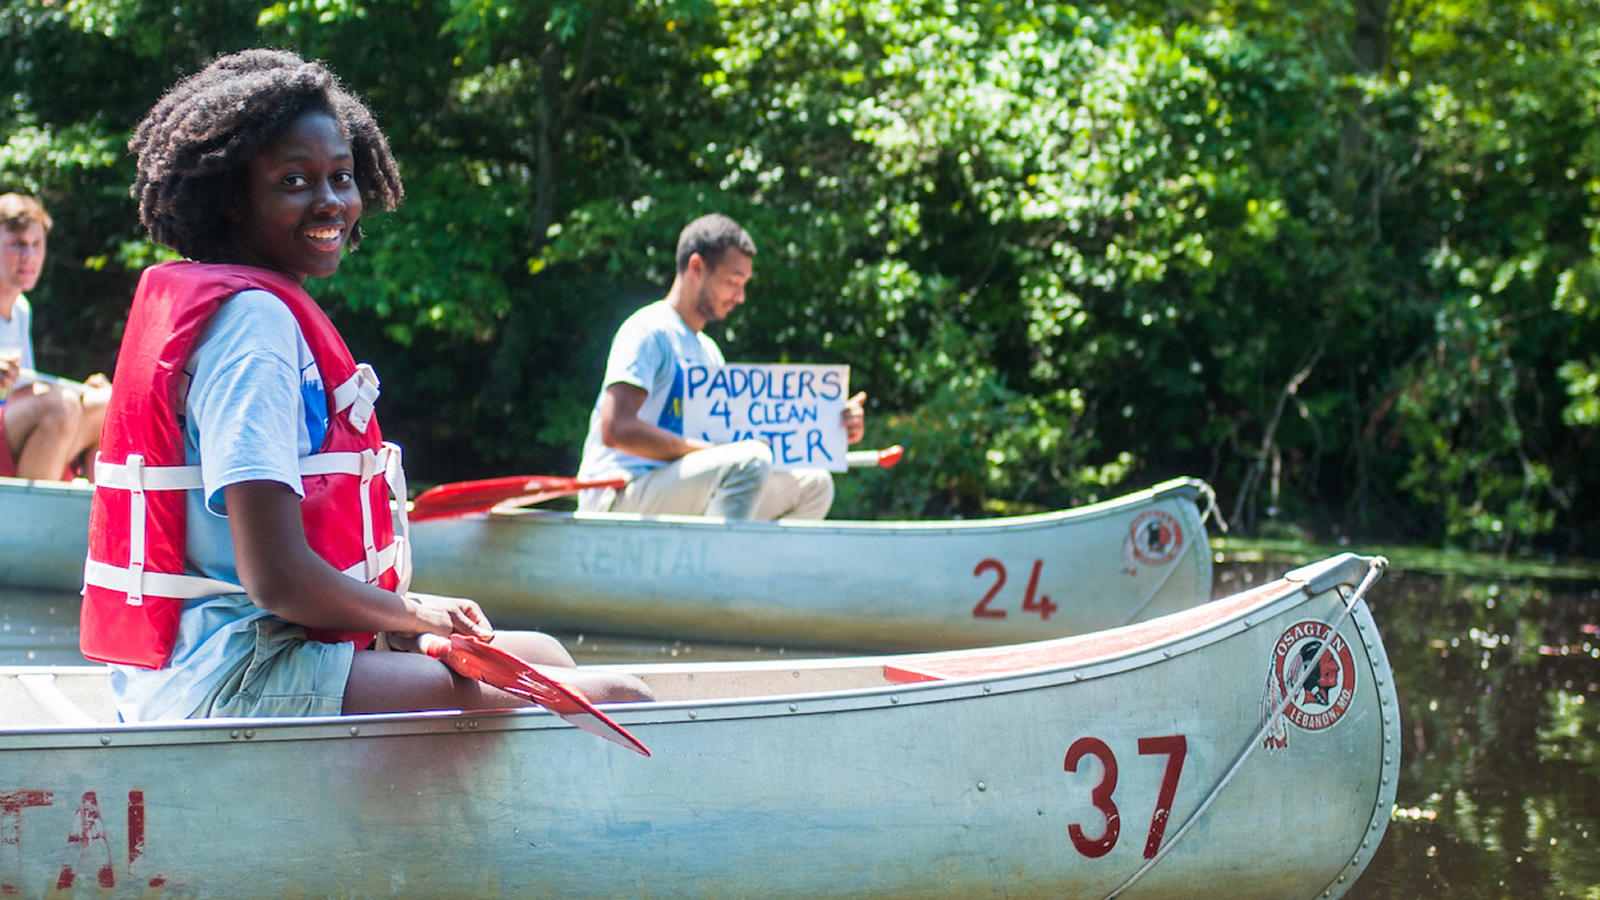 <h4>OUR WATER</h4><h5>We're defending the funding the EPA needs to keep our waters clean, protections for nearly 2 million miles of streams, and more.</h5><em>Nicholas Thomas</em>